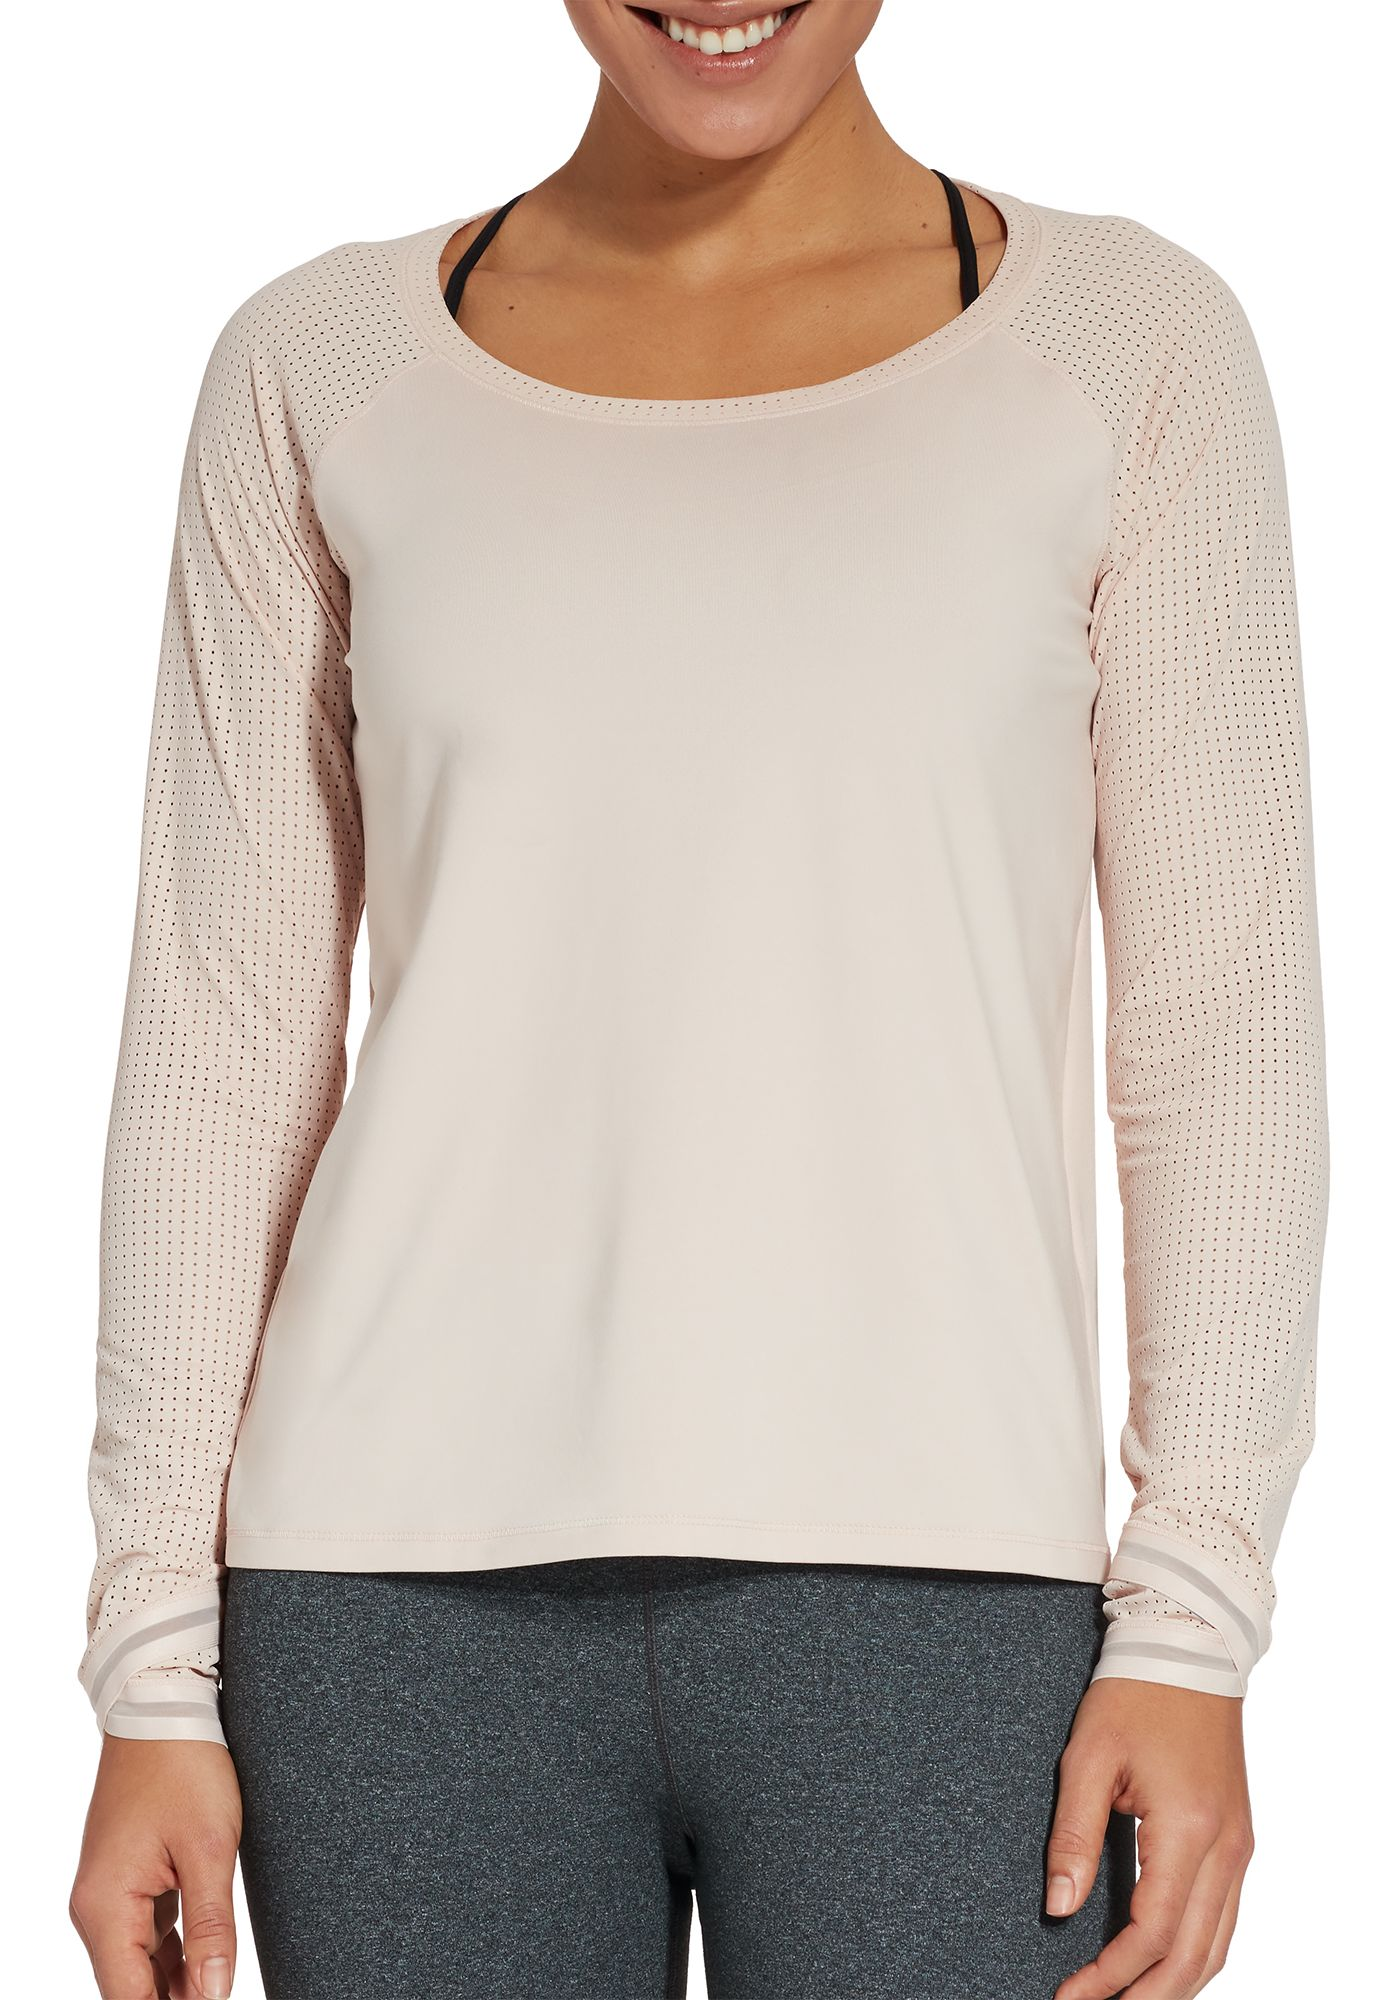 CALIA by Carrie Underwood Women's Move Mesh Sleeve Long Sleeve Shirt